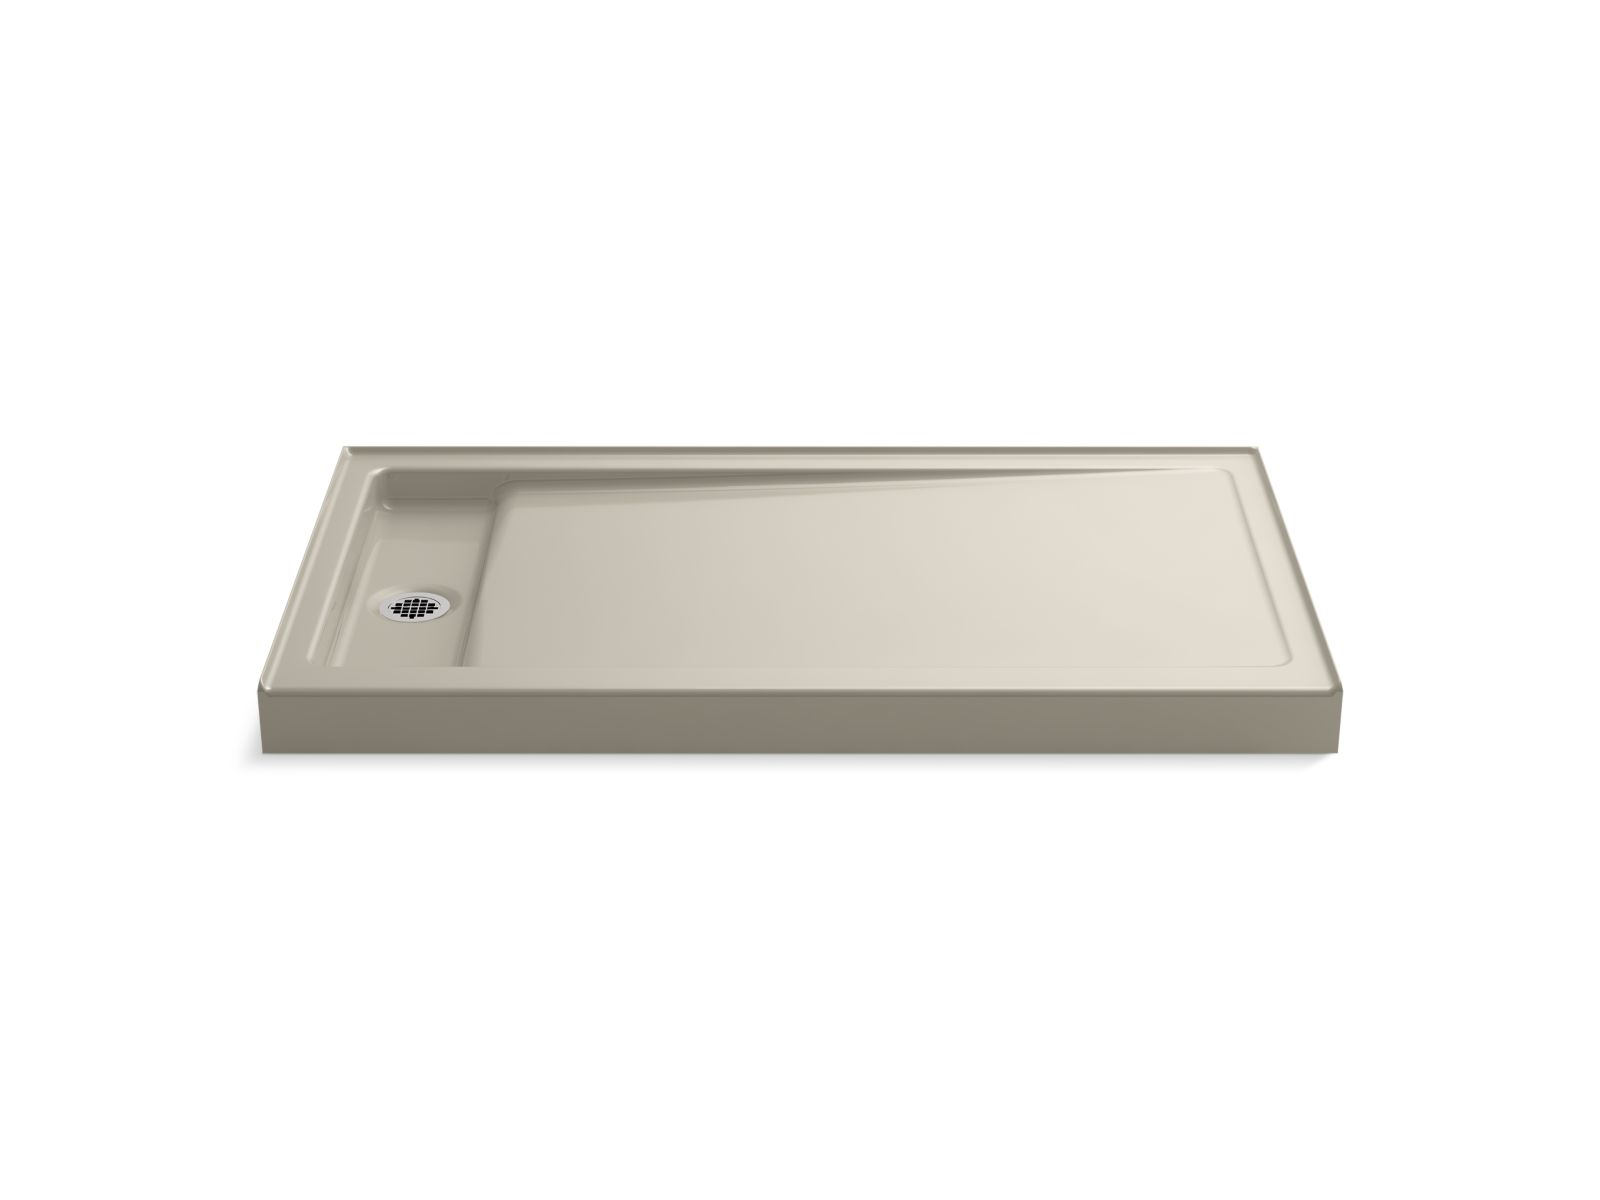 "Kohler Bellwether® K-9177-G9 60"" x 34"" single-threshold shower base with left center drain Sandbar"